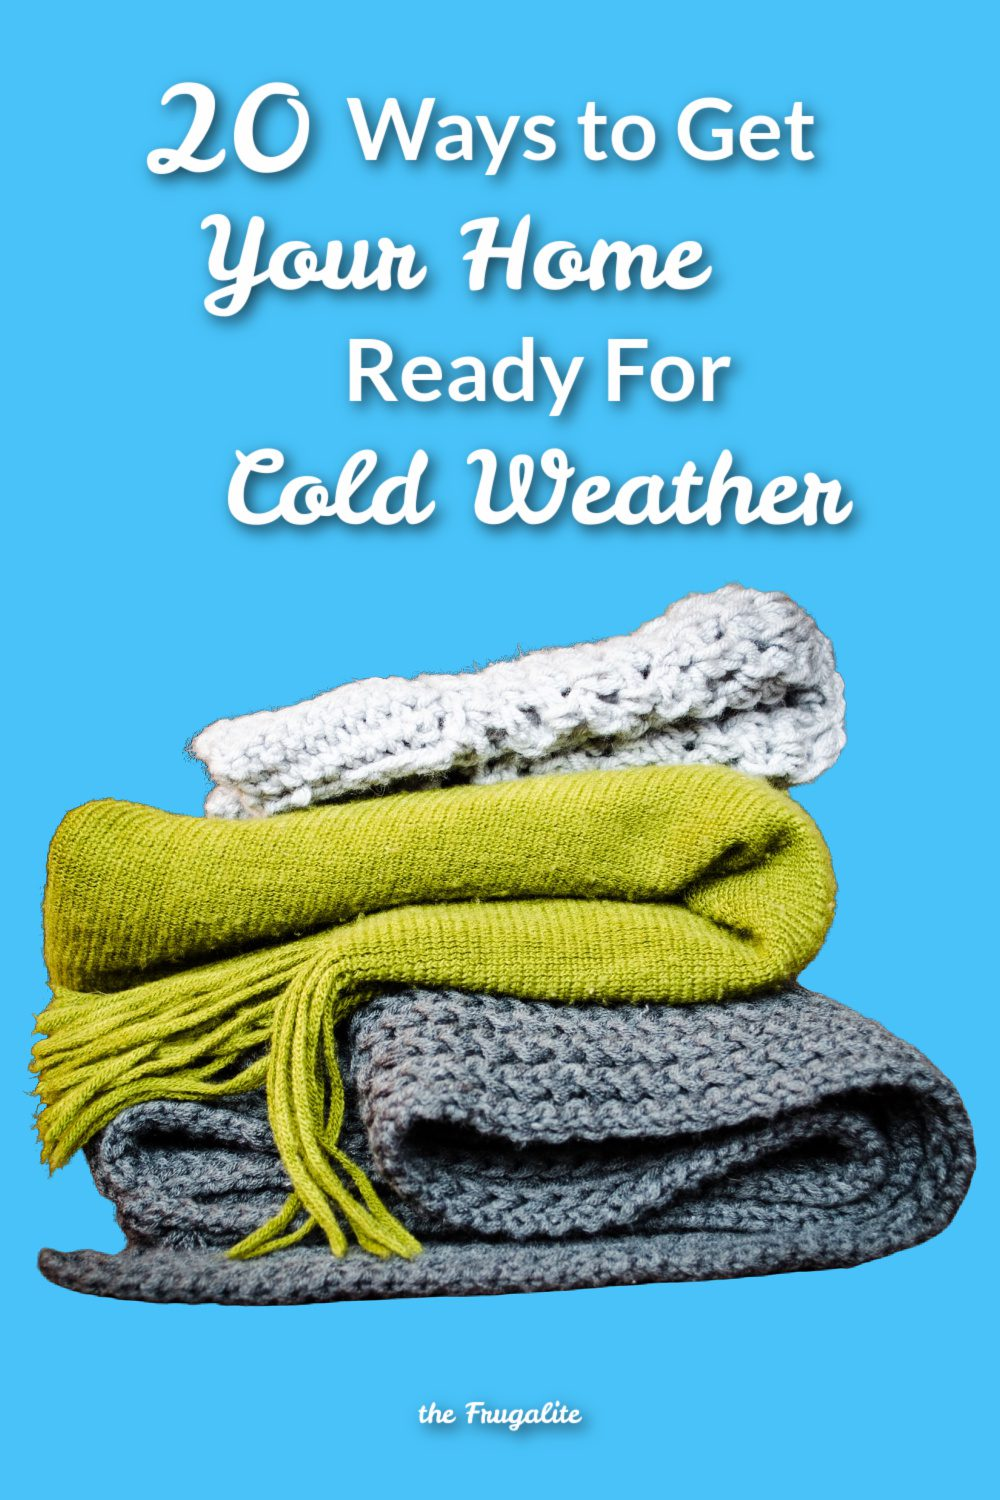 20 Cozy Ways to Get Your Home Ready for Cold Weather